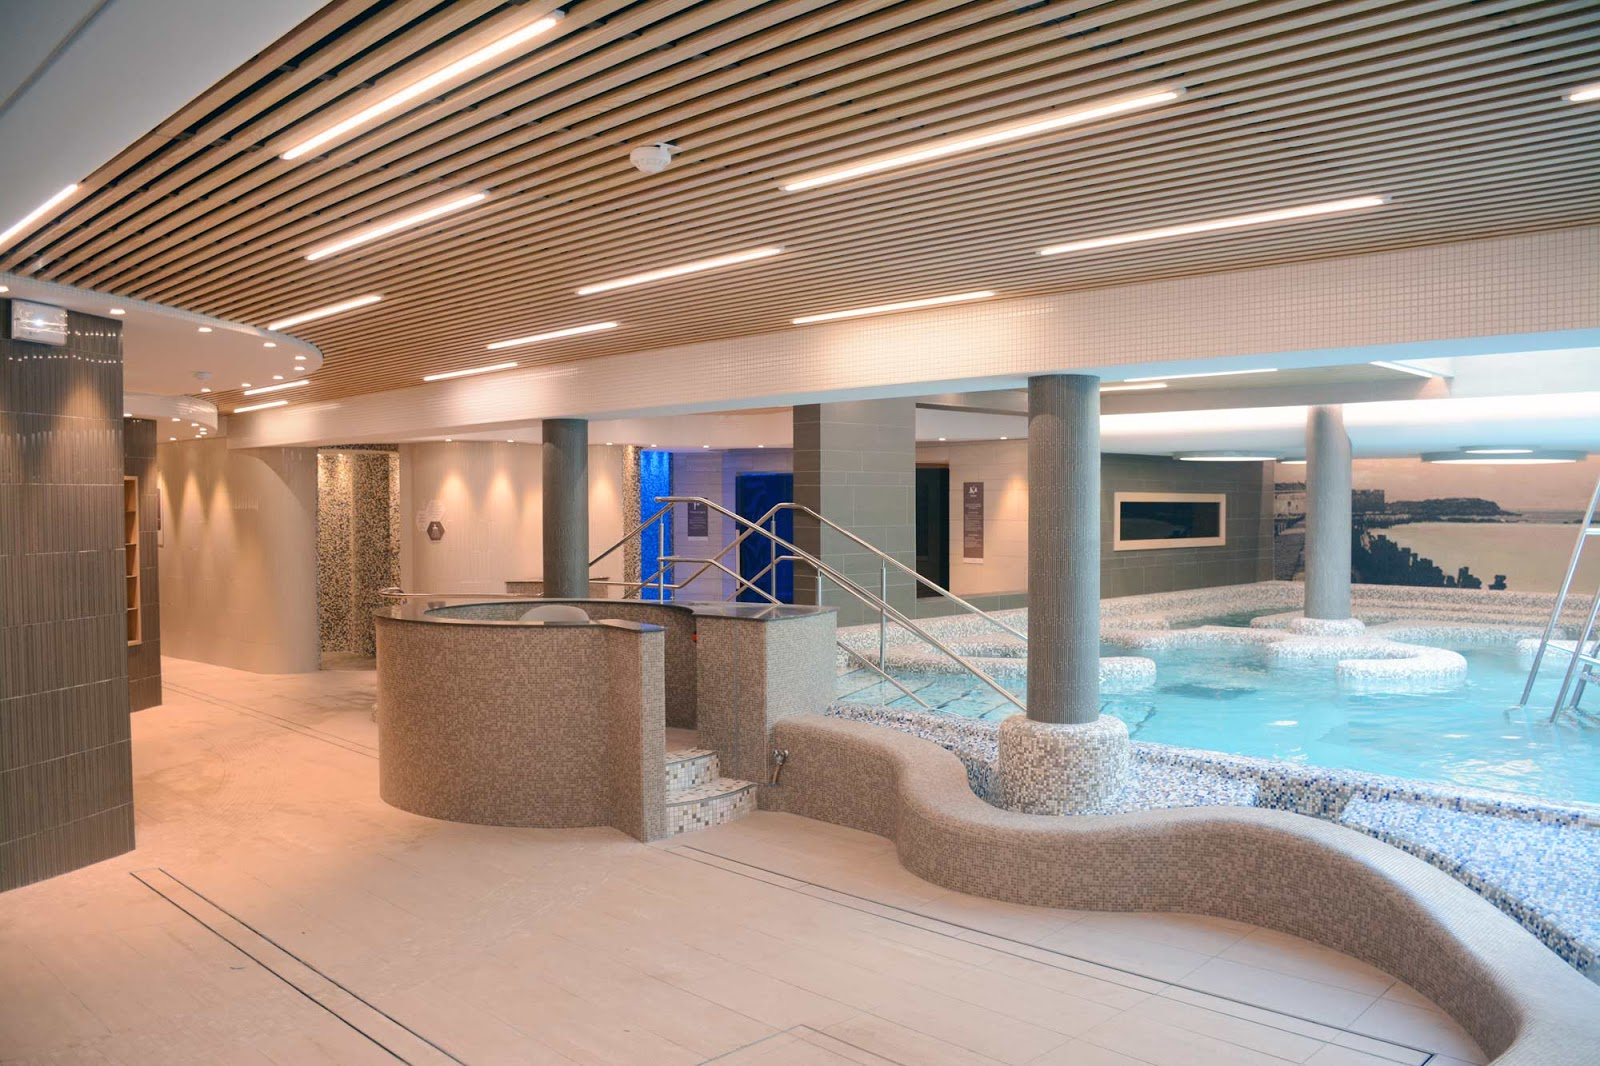 Thermes marins st malo langlois sobreti for Plafond ossature bois